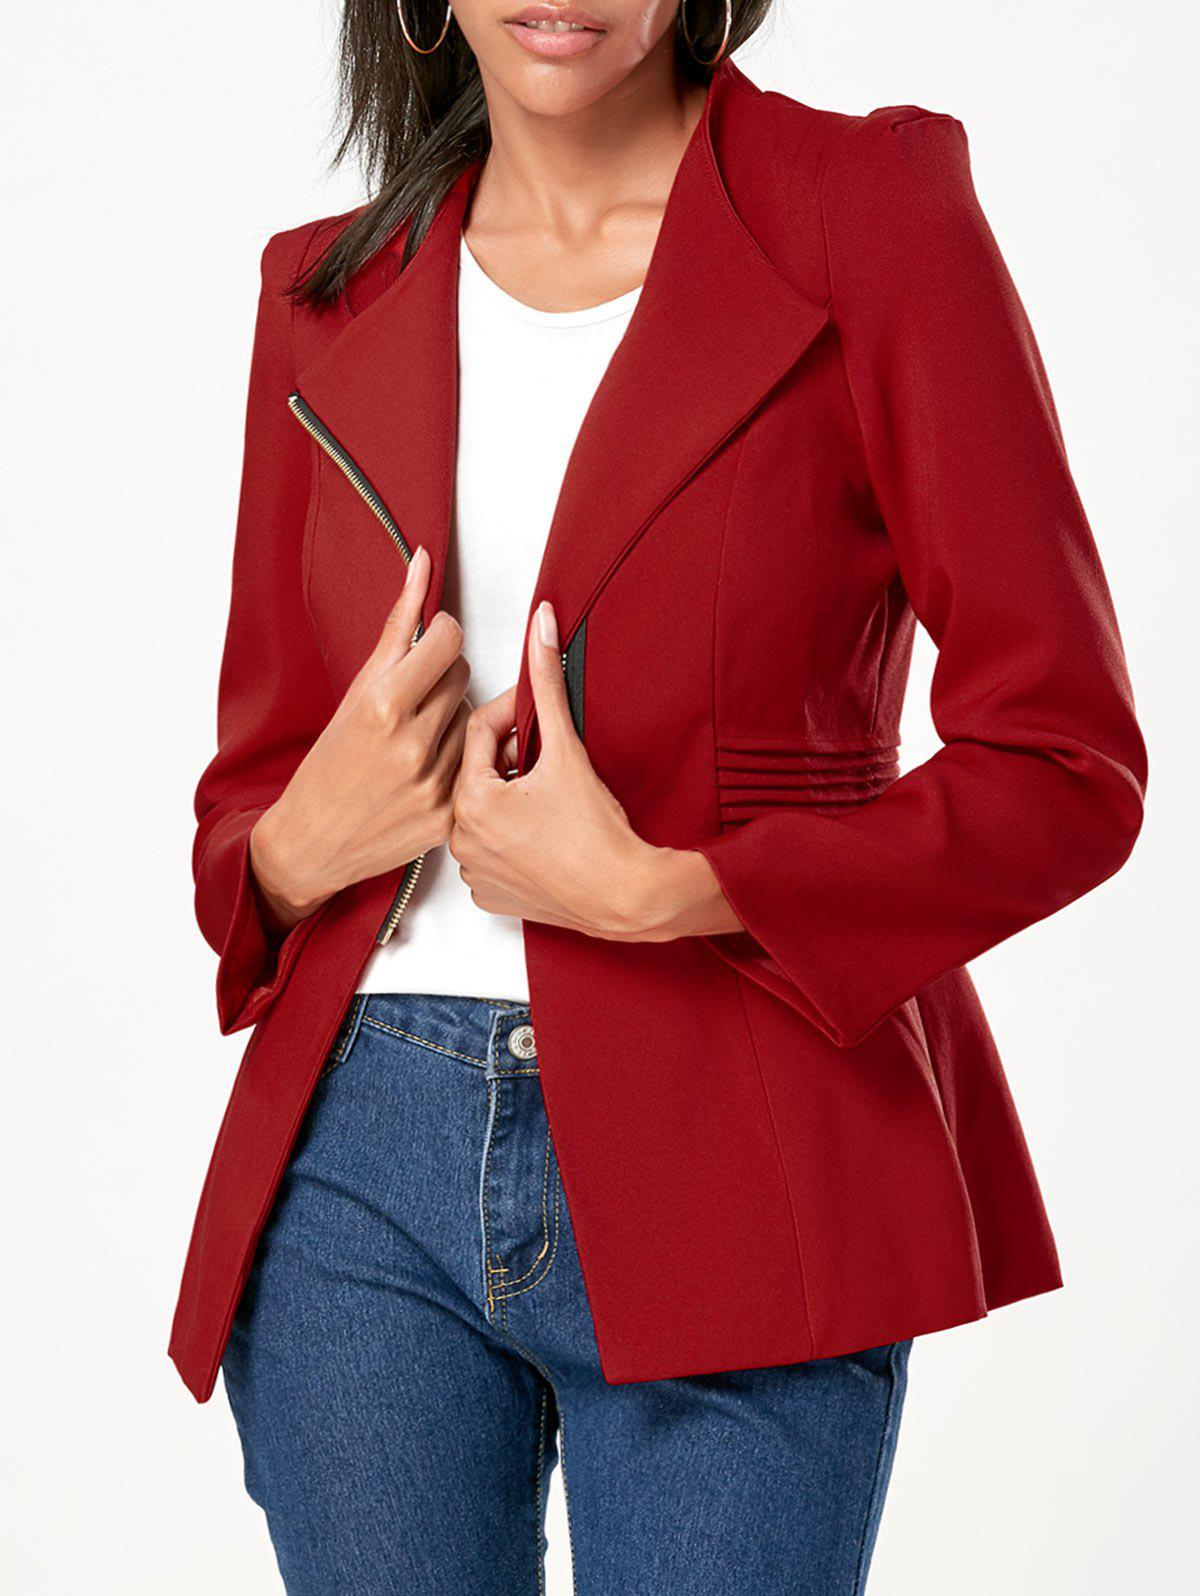 Ruched Zipper Design Tunic Blazer - WINE RED L